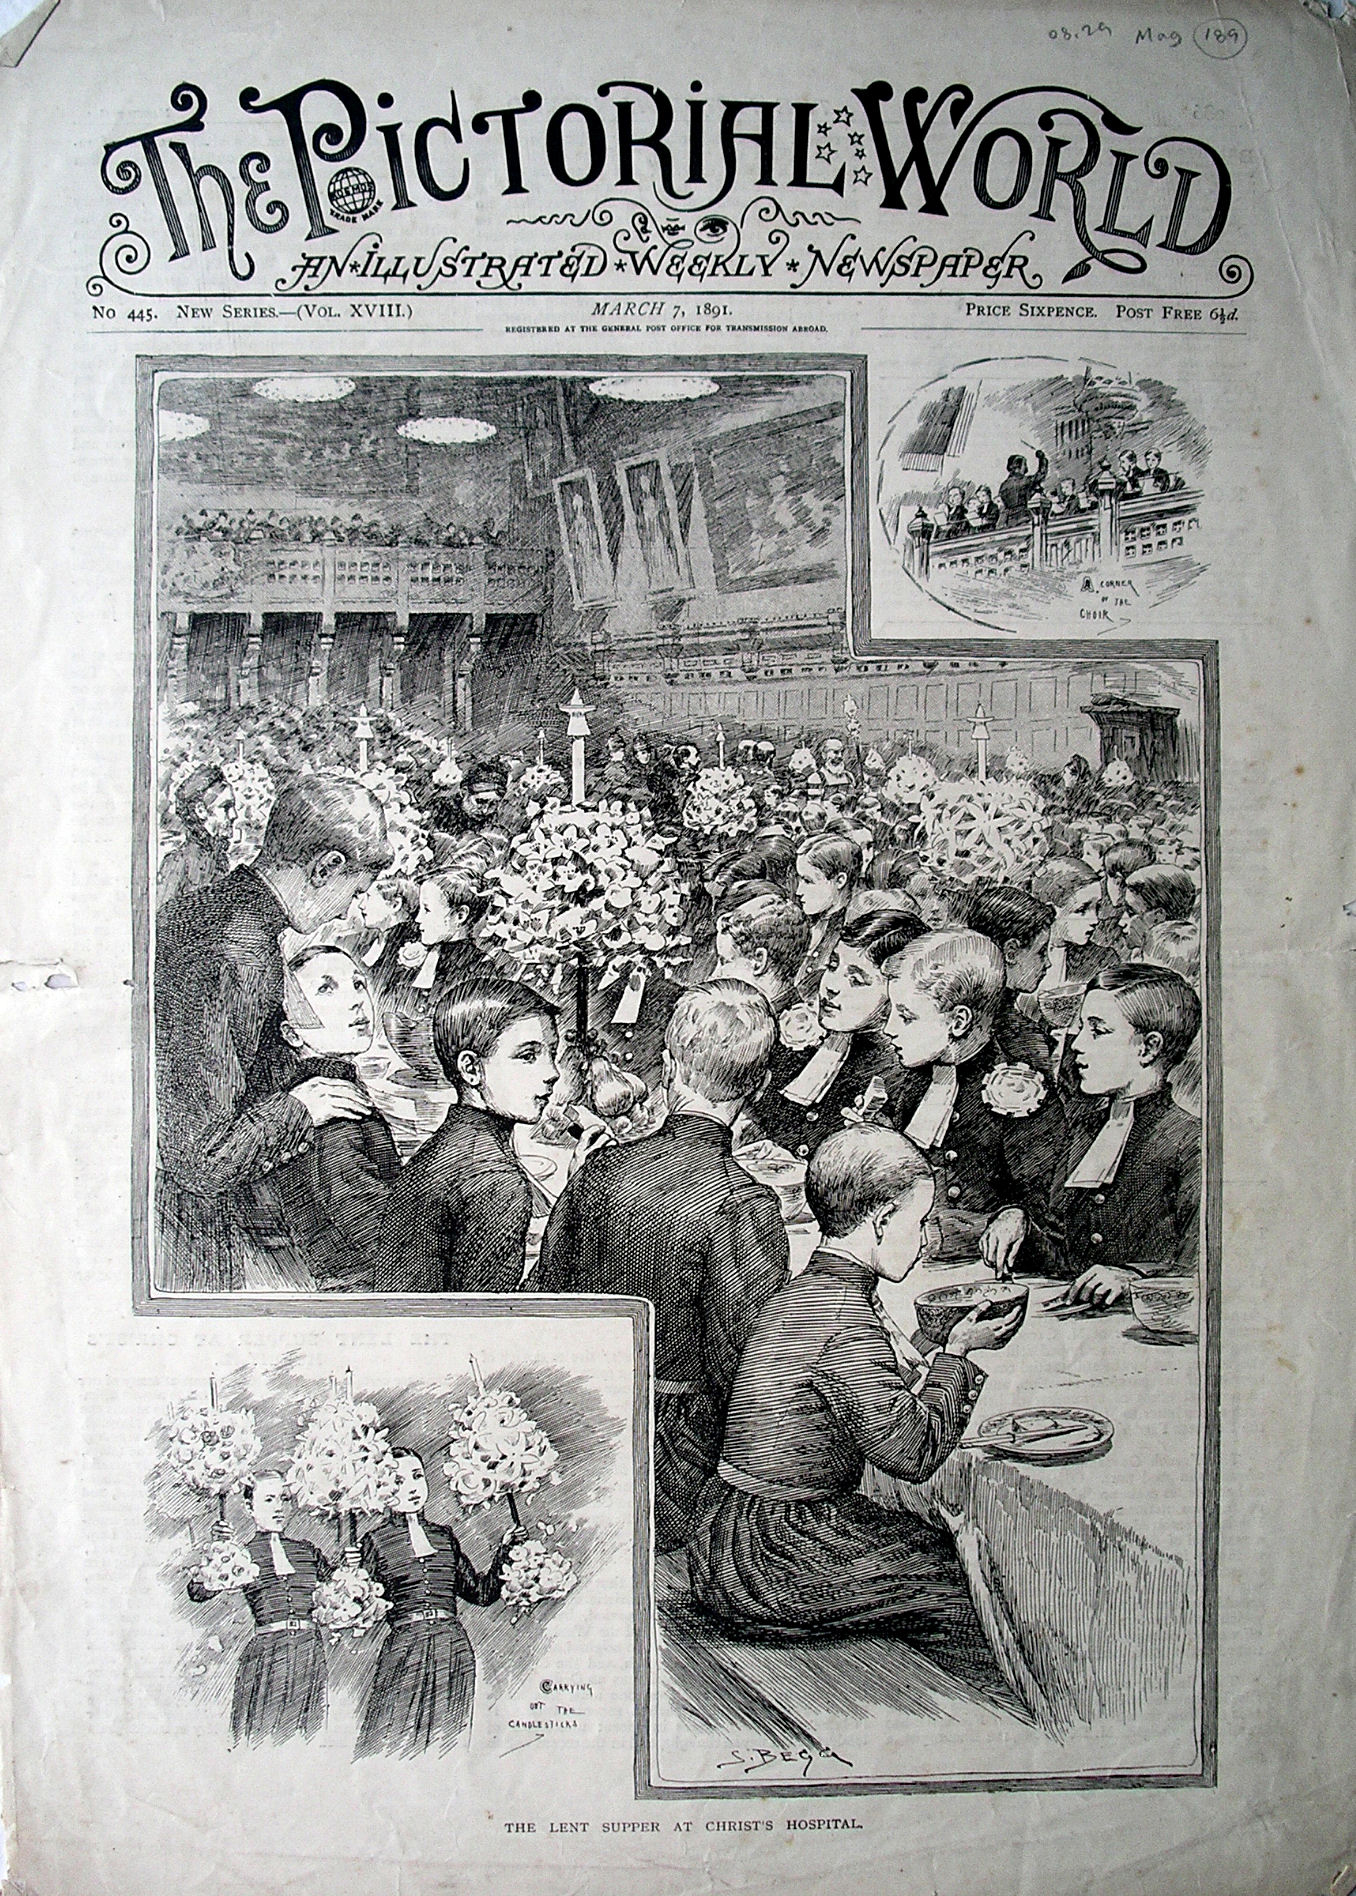 Pictorial World 7 March 1891